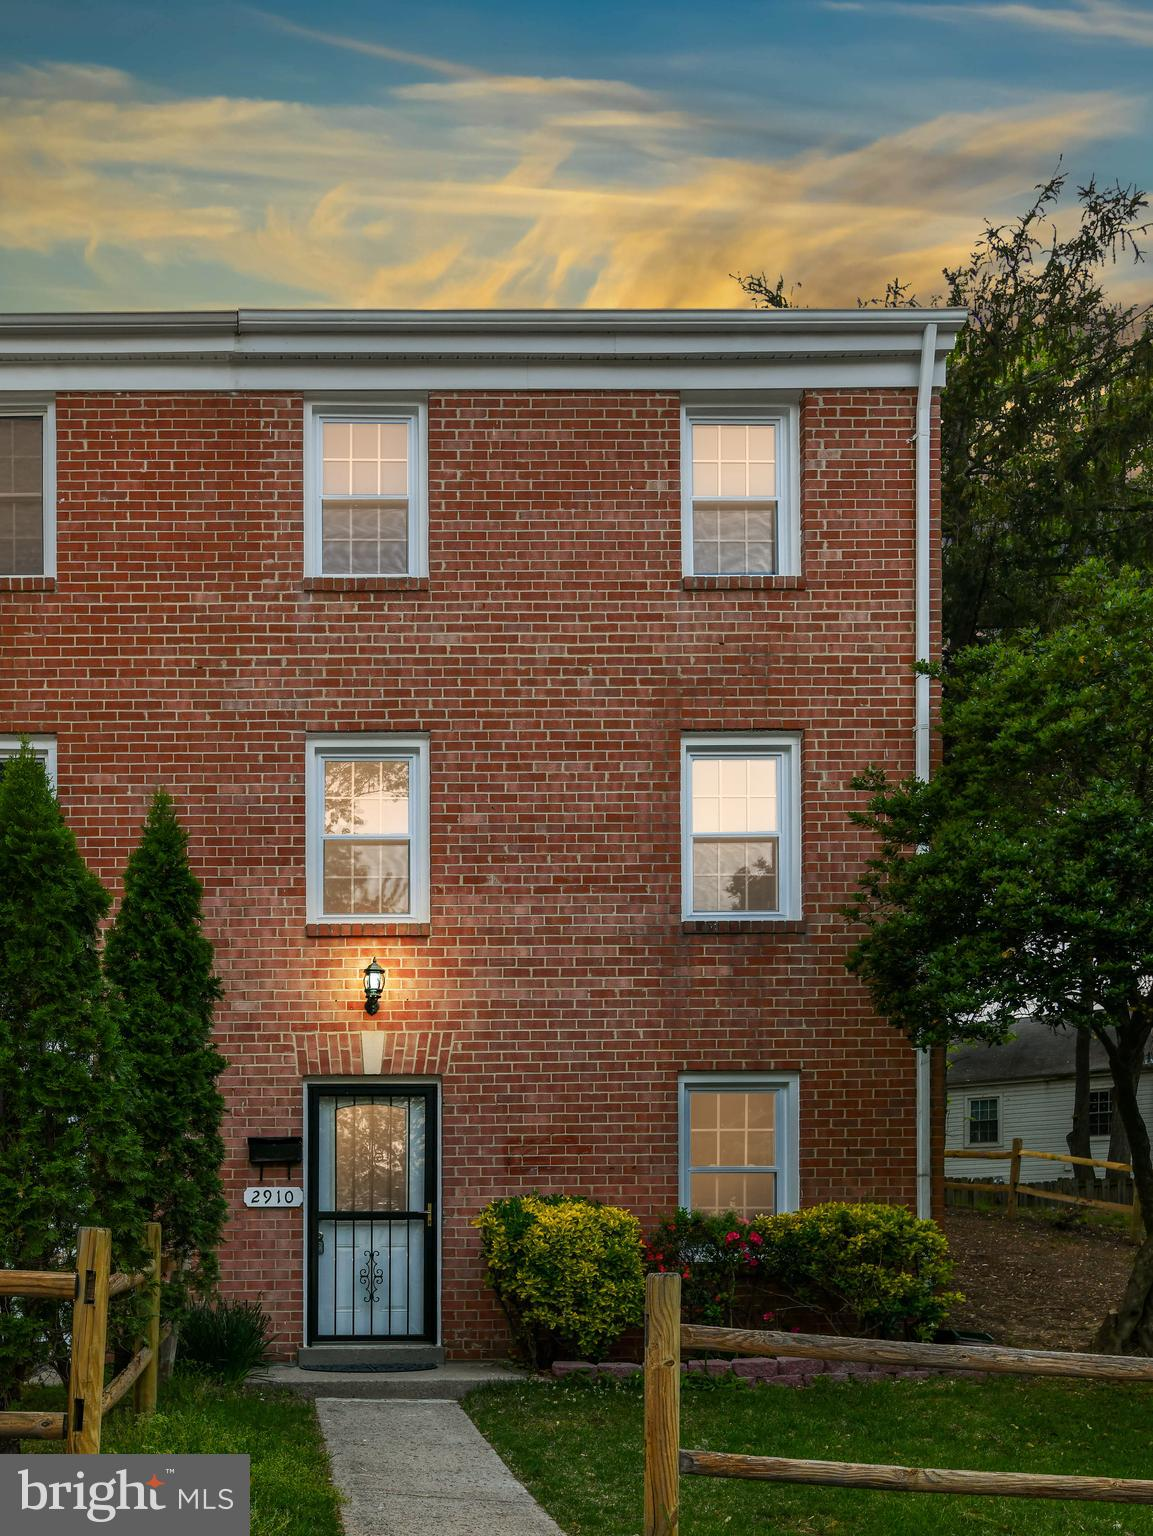 BEAUTIFUL 3 LEVEL BRICK FRONT, END UNIT TOWNHOUSE. 3 BED 2.5 BATH, RENOVATED TOWNHOUSE. KITCHEN WITH NEW CABINETS, GRANITE TOPS AND STAINLESS STEEL APPLIANCES. UPGRADED LIGHTS, FRESH PAINT, NEW CARPET, FULLY FINISHED BASEMENT WITH REC ROOM. NEW ROOF, NEW HVAC, NEW WINDOWS, FENCED BACKYARD. MINUTES AWAY FROM I-95, ROUTE 1, QUANTICO BASE, SHOPPING, DINING, POTOMAC MALL, WALL MART.